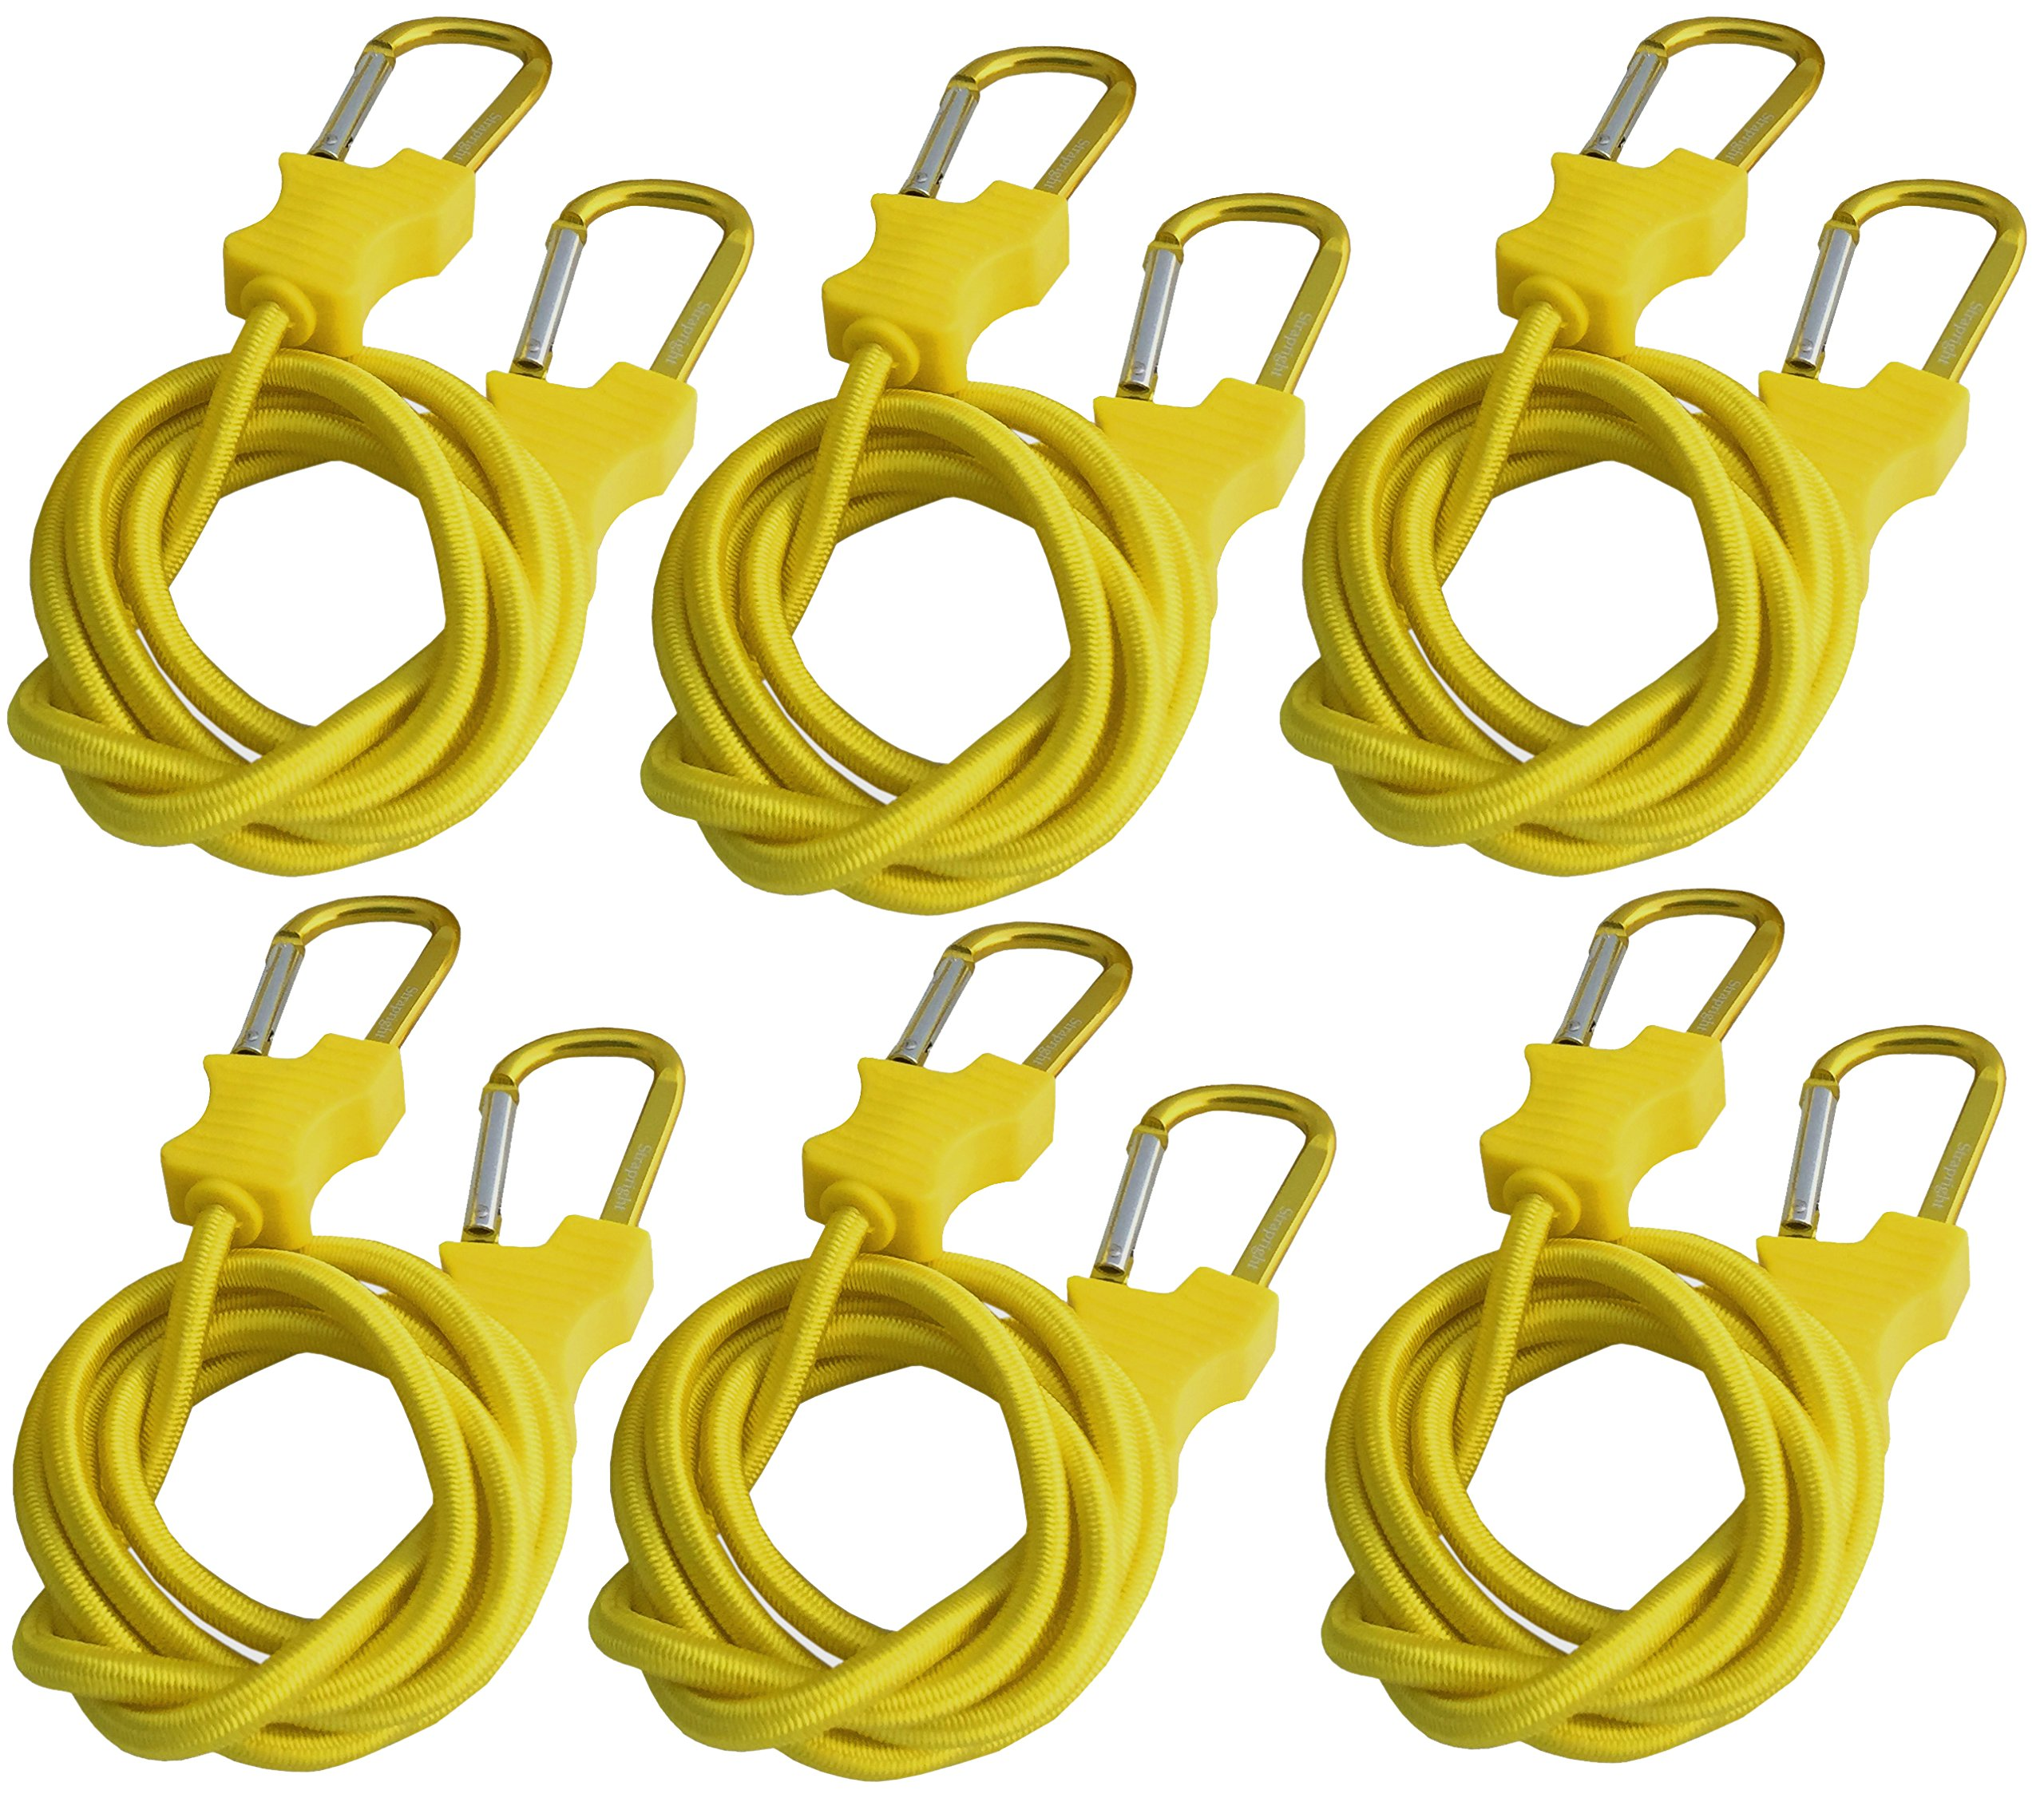 Bungee Cord with Carabiners Super Long 60''   6 Pack UV Treated with Superior Latex Core which Lasts Longer than Flat Bungees   Strong Wide Mouth Hook Locks onto Anchor Points with Ease (Yellow)